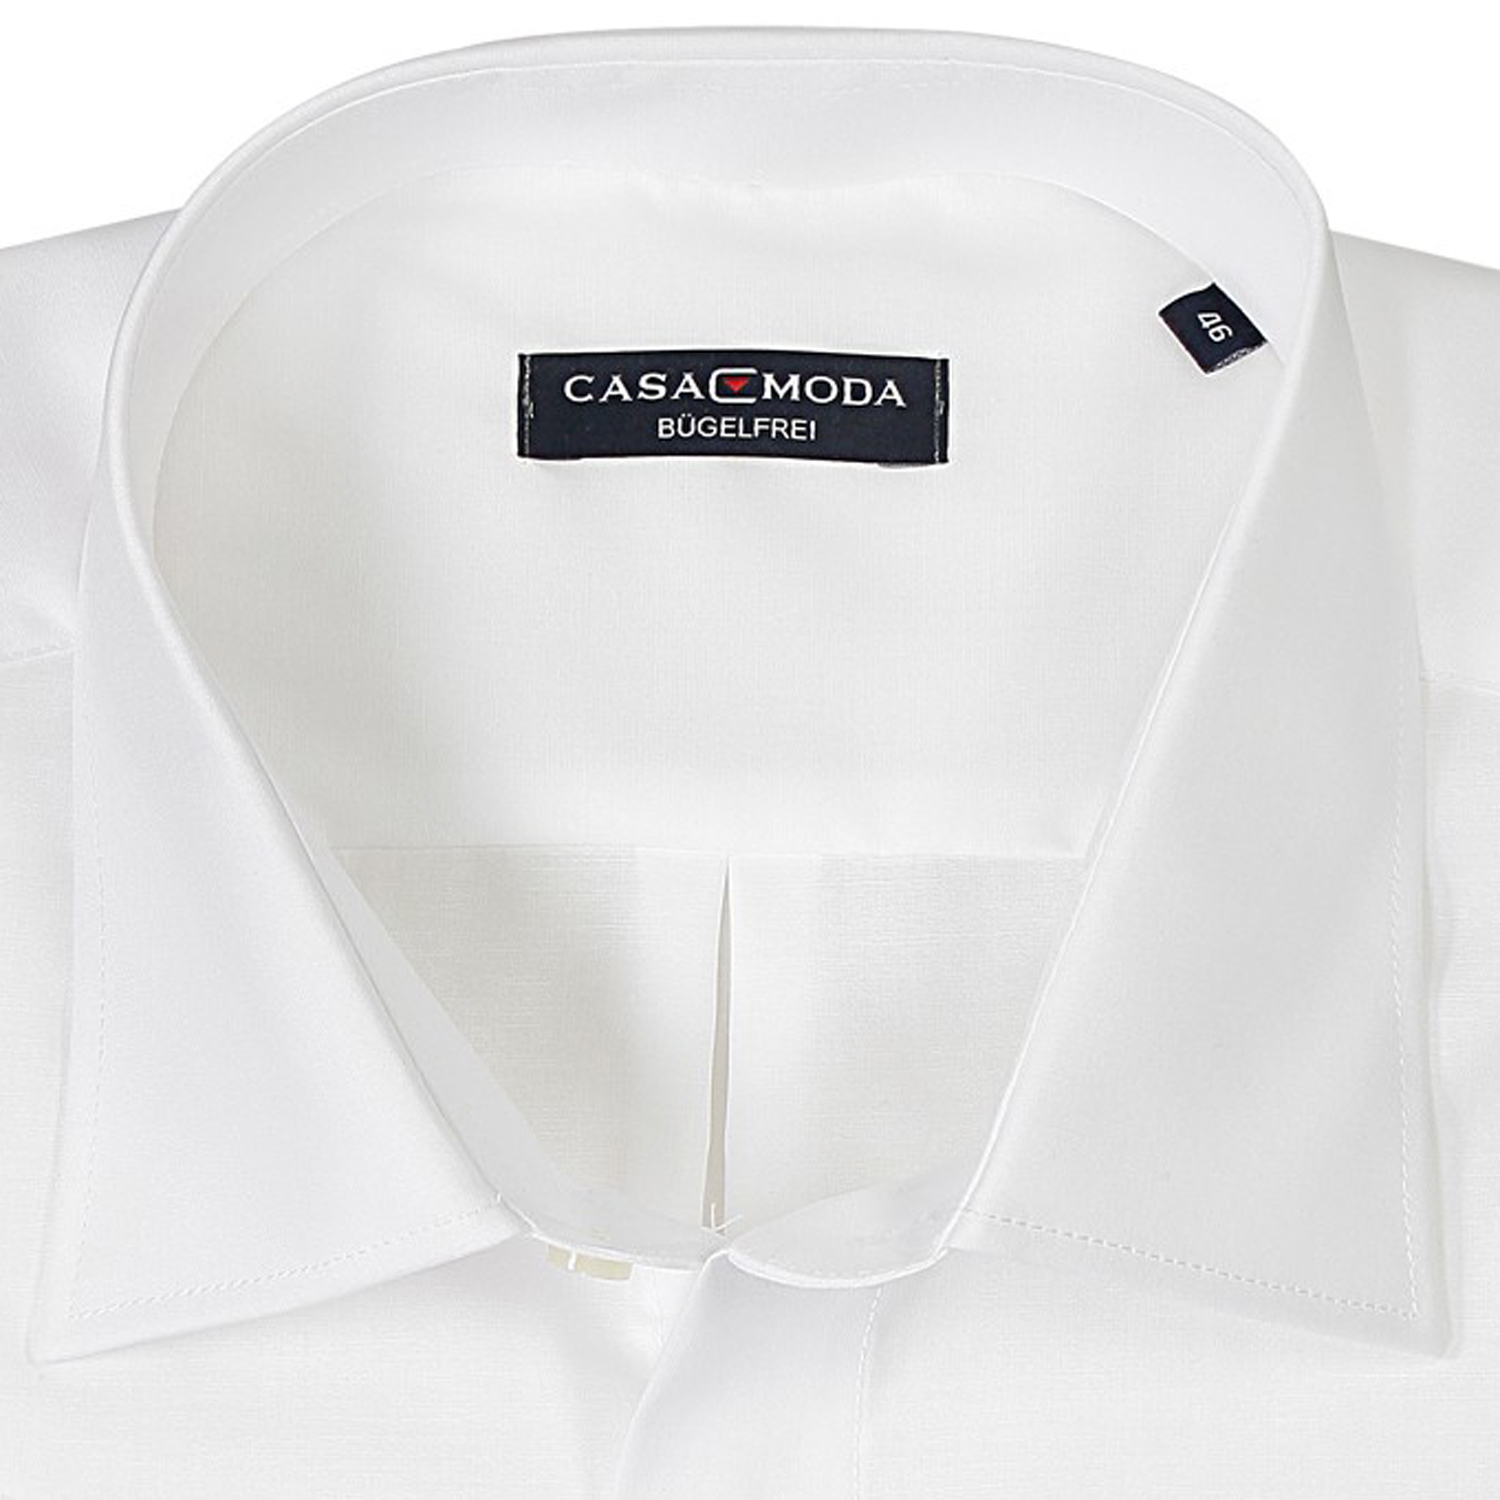 Detail Image to White shirt by Casamoda in plus size up to 7XL